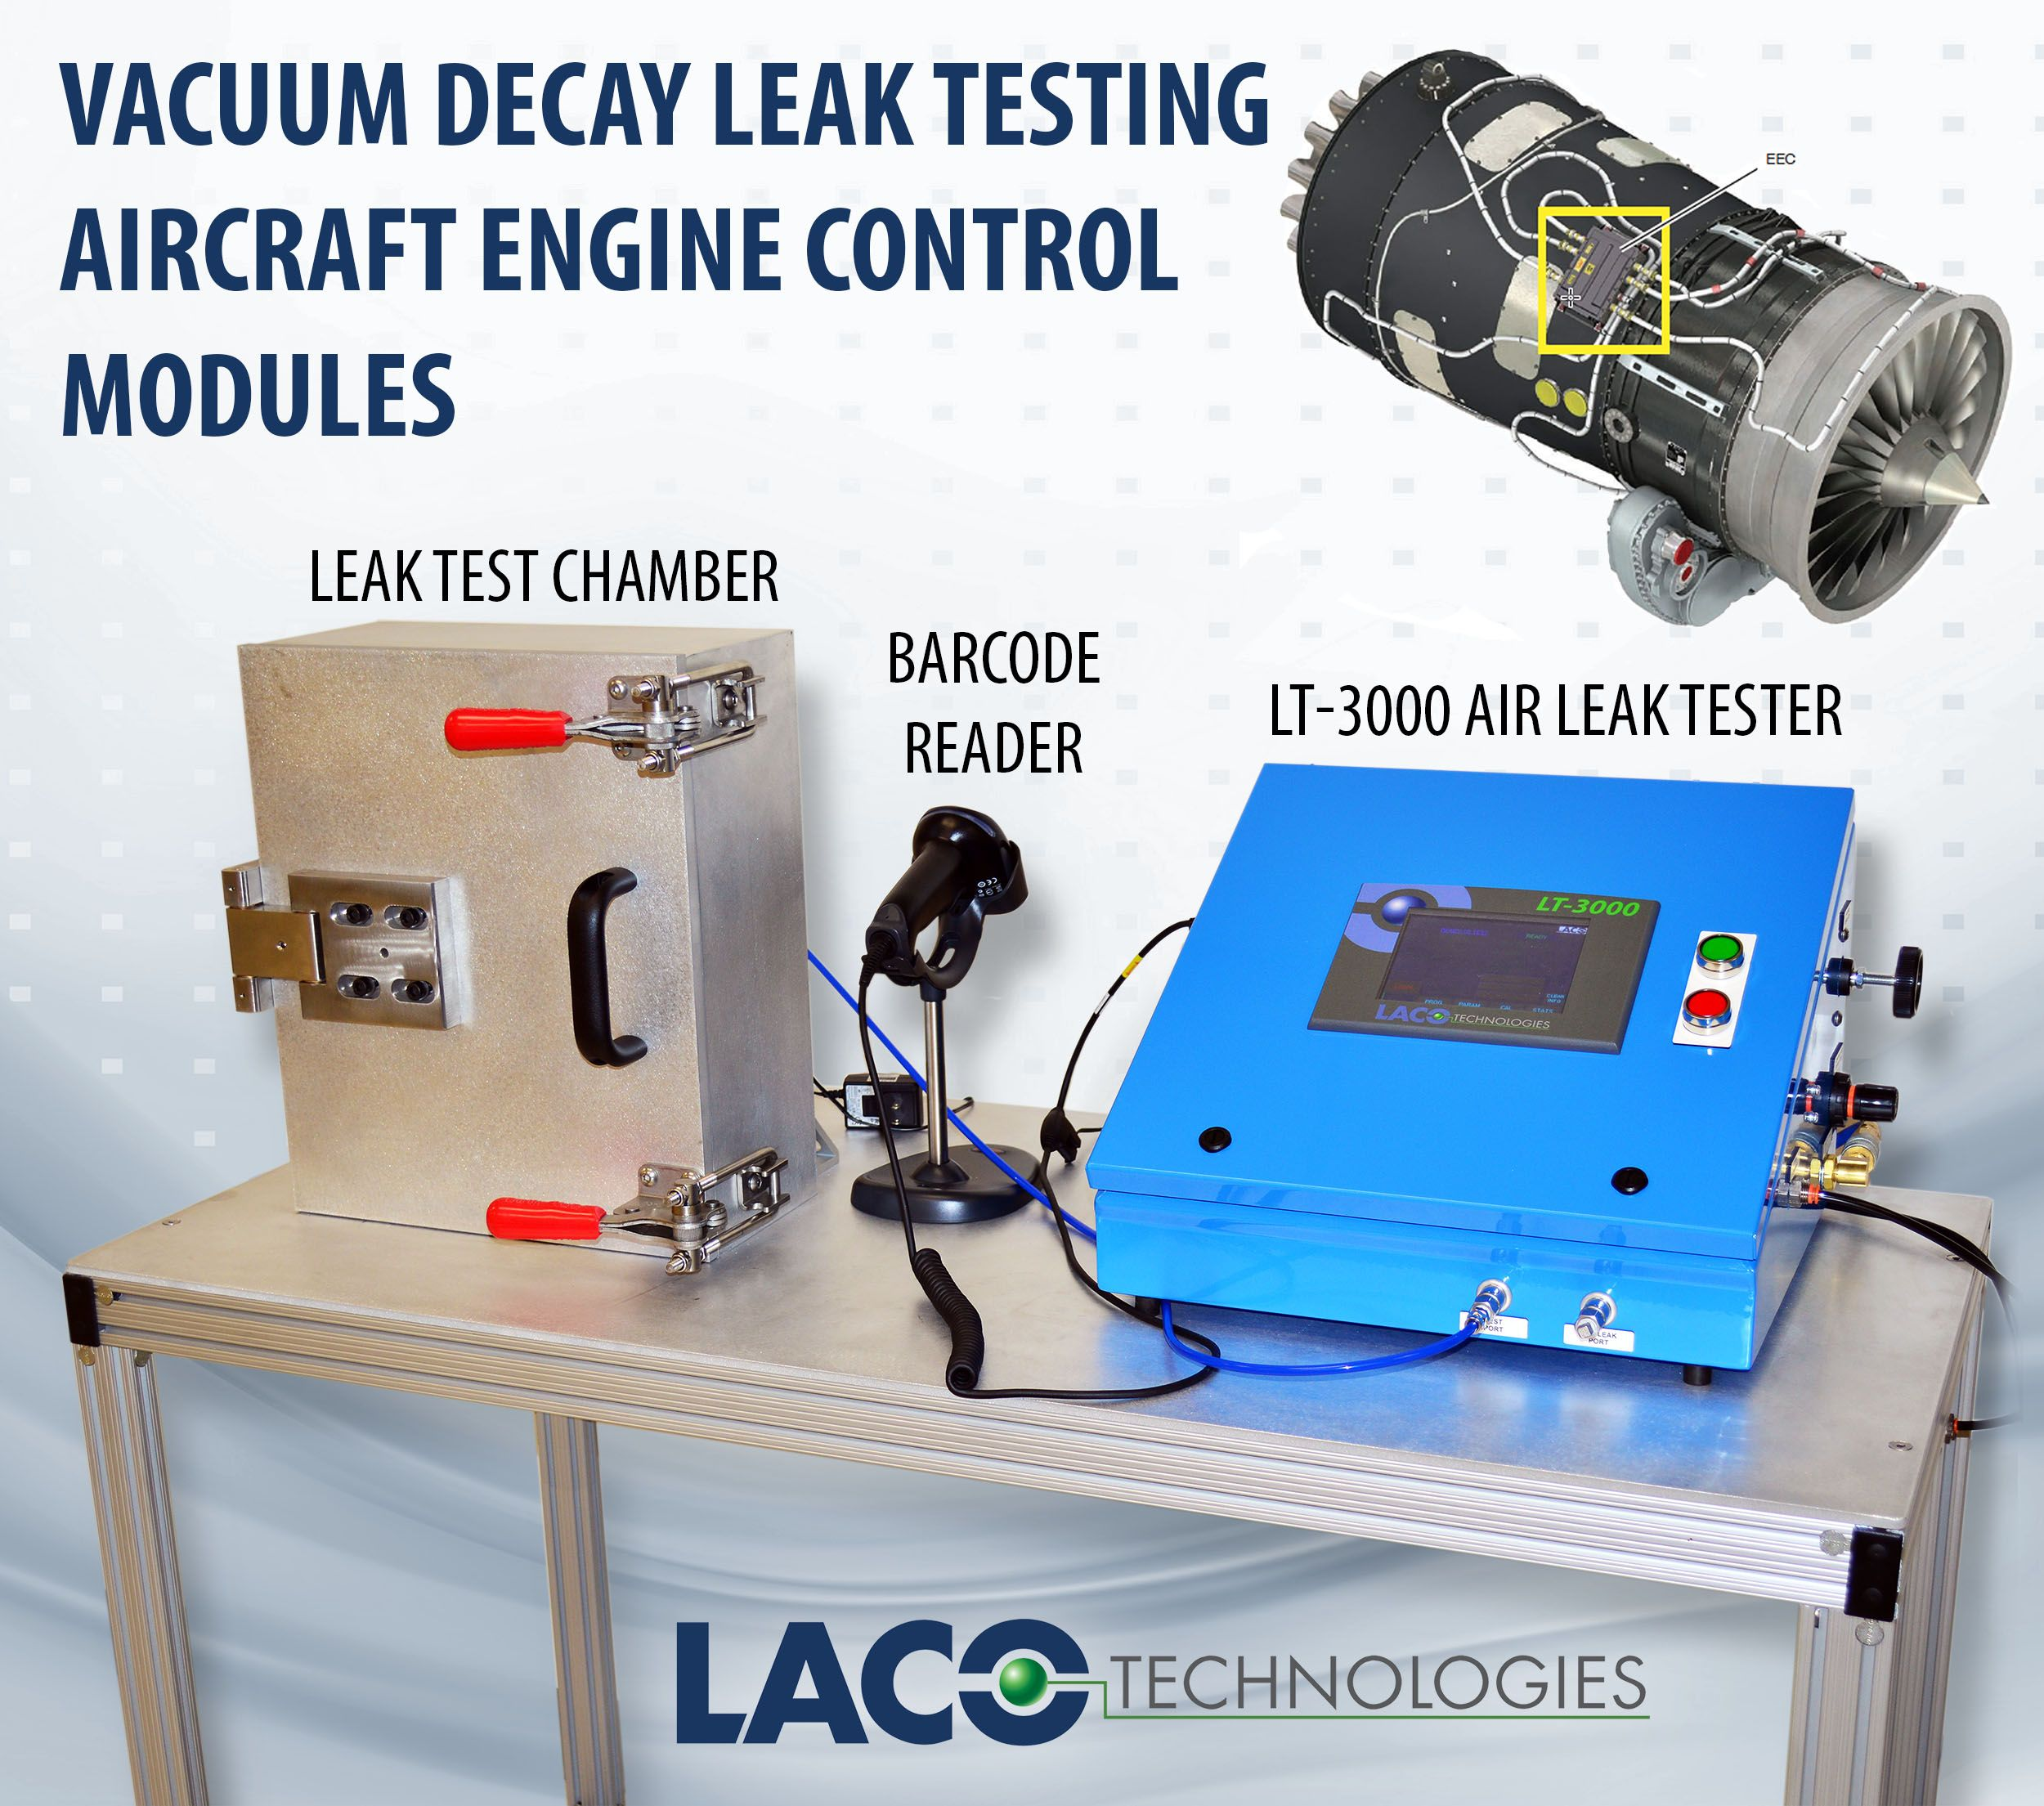 #Manufacturer of #aircraft engine control modules needed leak test system to meet demanding production leak testing needs. LACO's solution was a Vacuum Decay Leak Test System featuring our LT-3000 which is an automated bench-top air vacuum decay leak tester capable of detection to < 0.1 sccm. Vacuum decay testing is often used for leak rates of 1 sccm and higher which is a common leak rate reject limit for pumps and fluid controlling devices in aircrafts. More: http://bit.ly/1LfQn8f